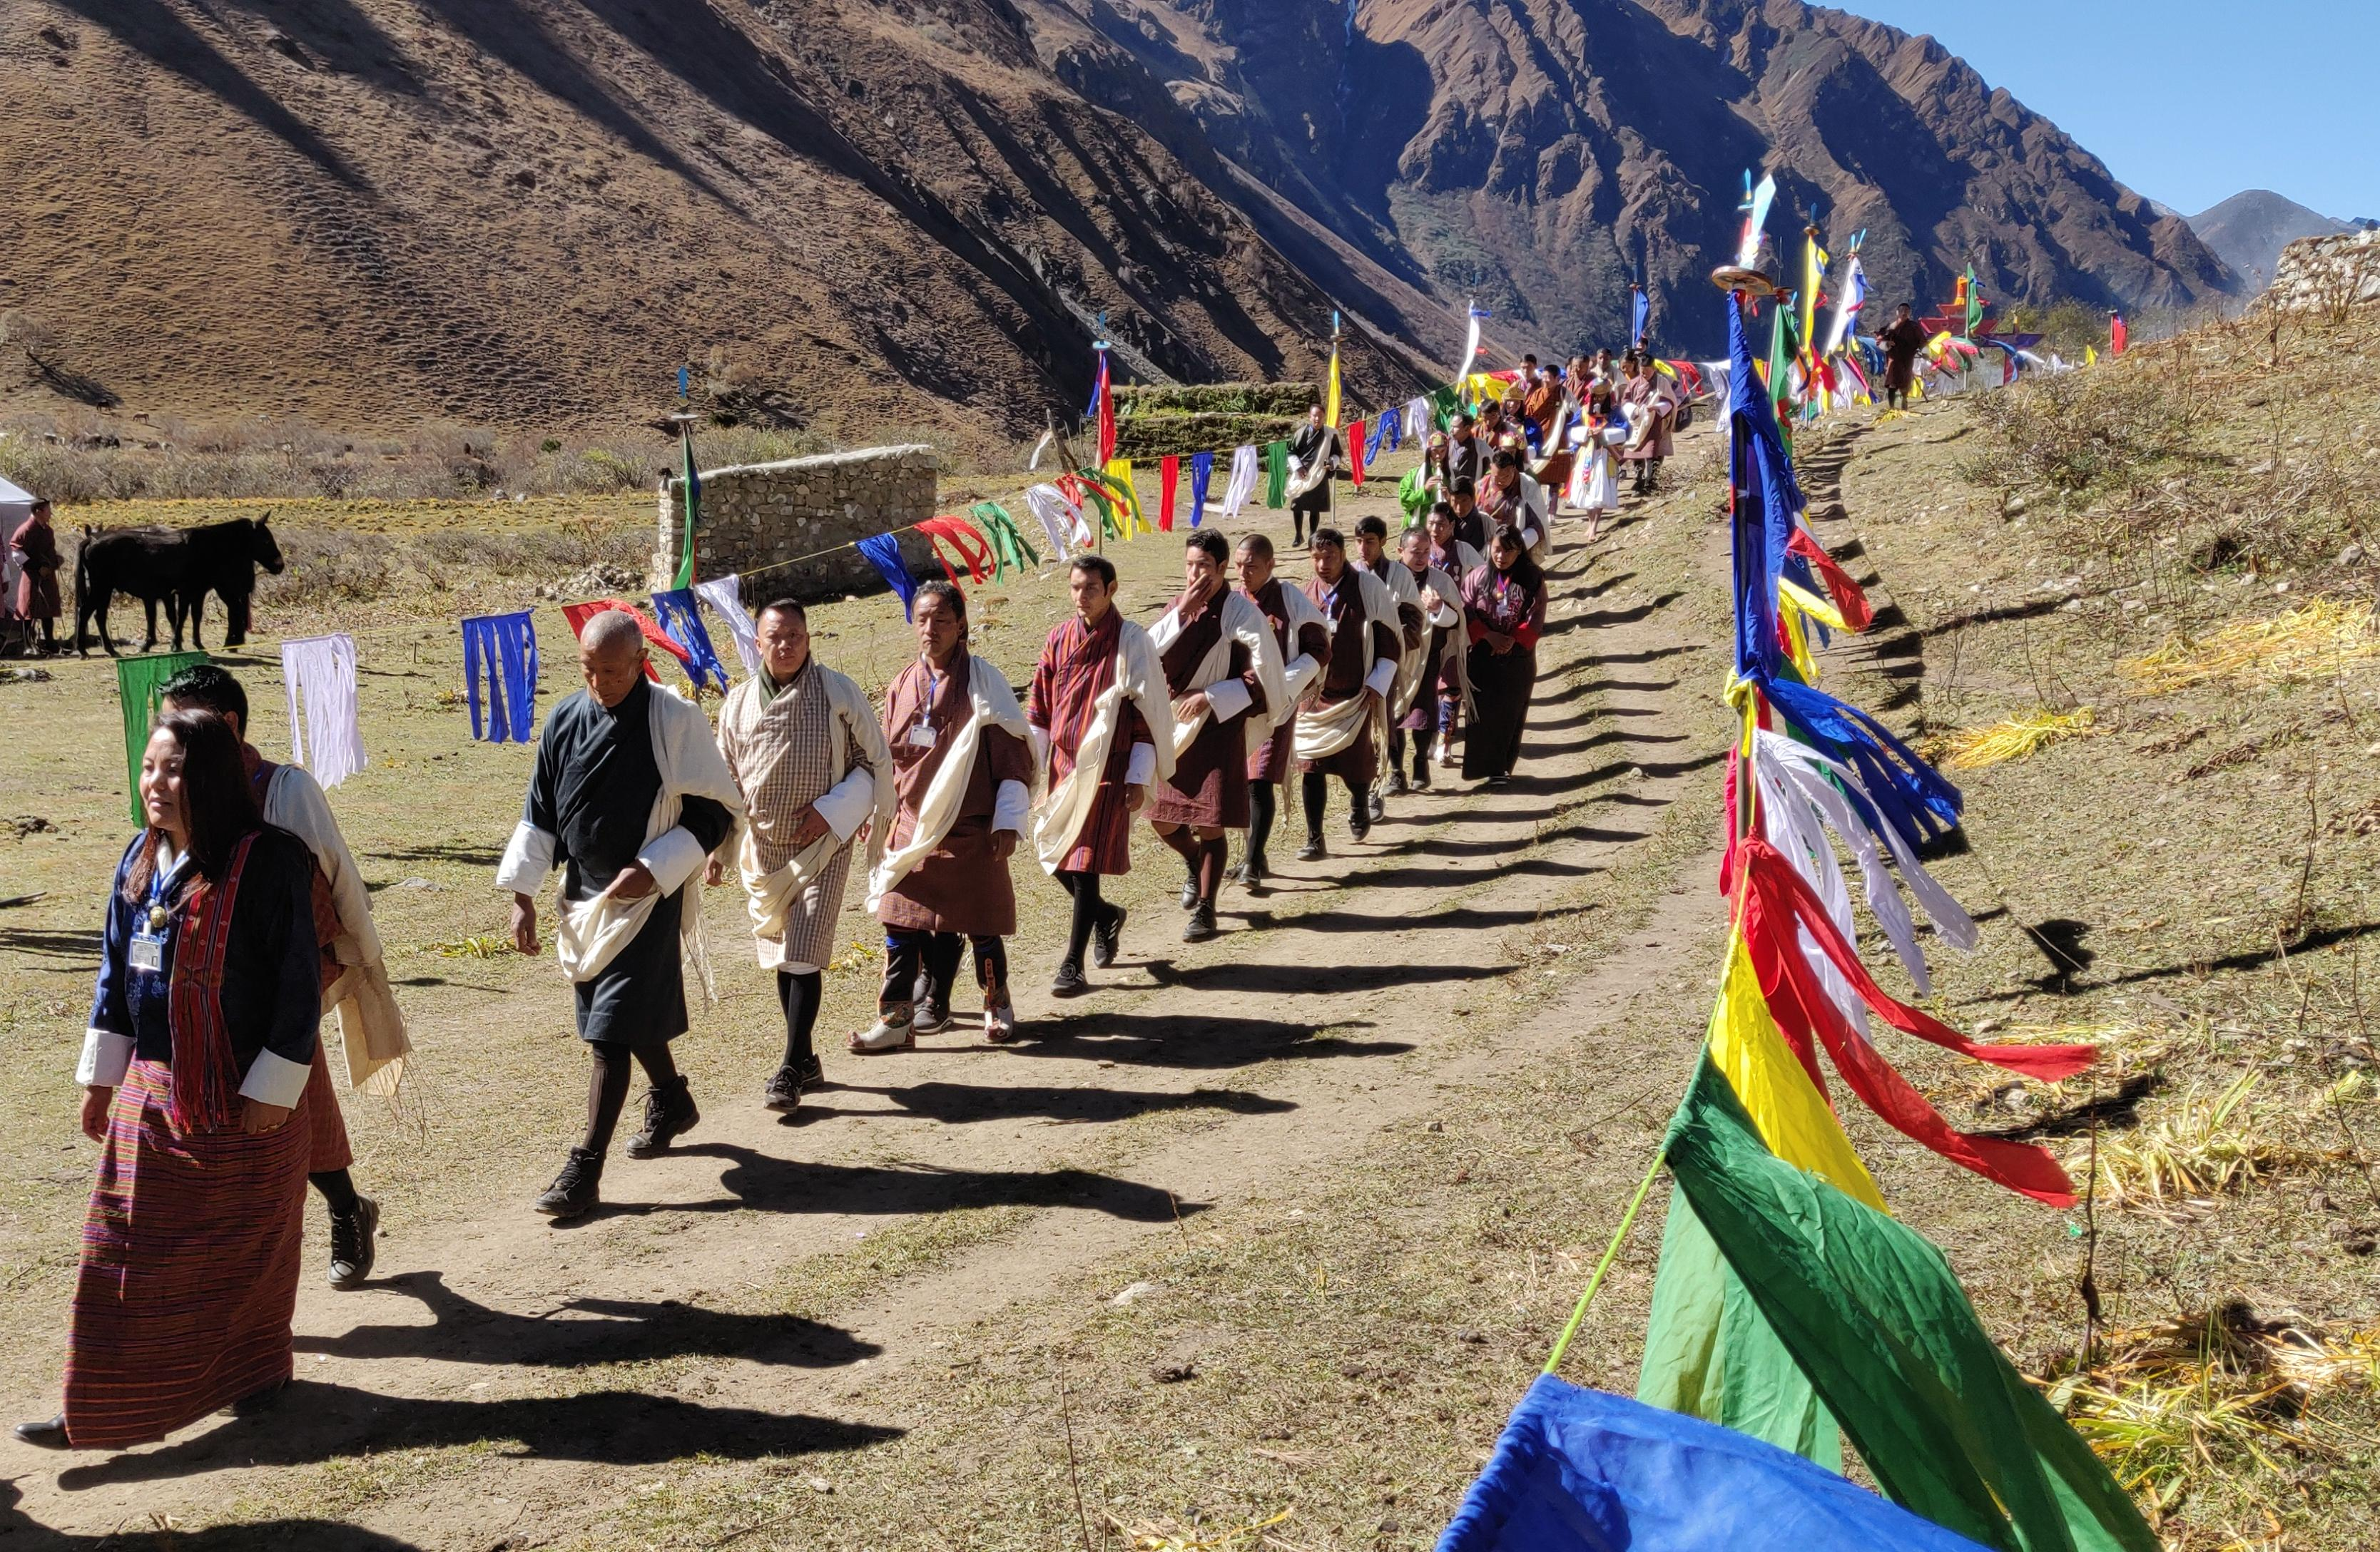 Jomolhari Mountain Festival – 14 & 15 Oct, 2020